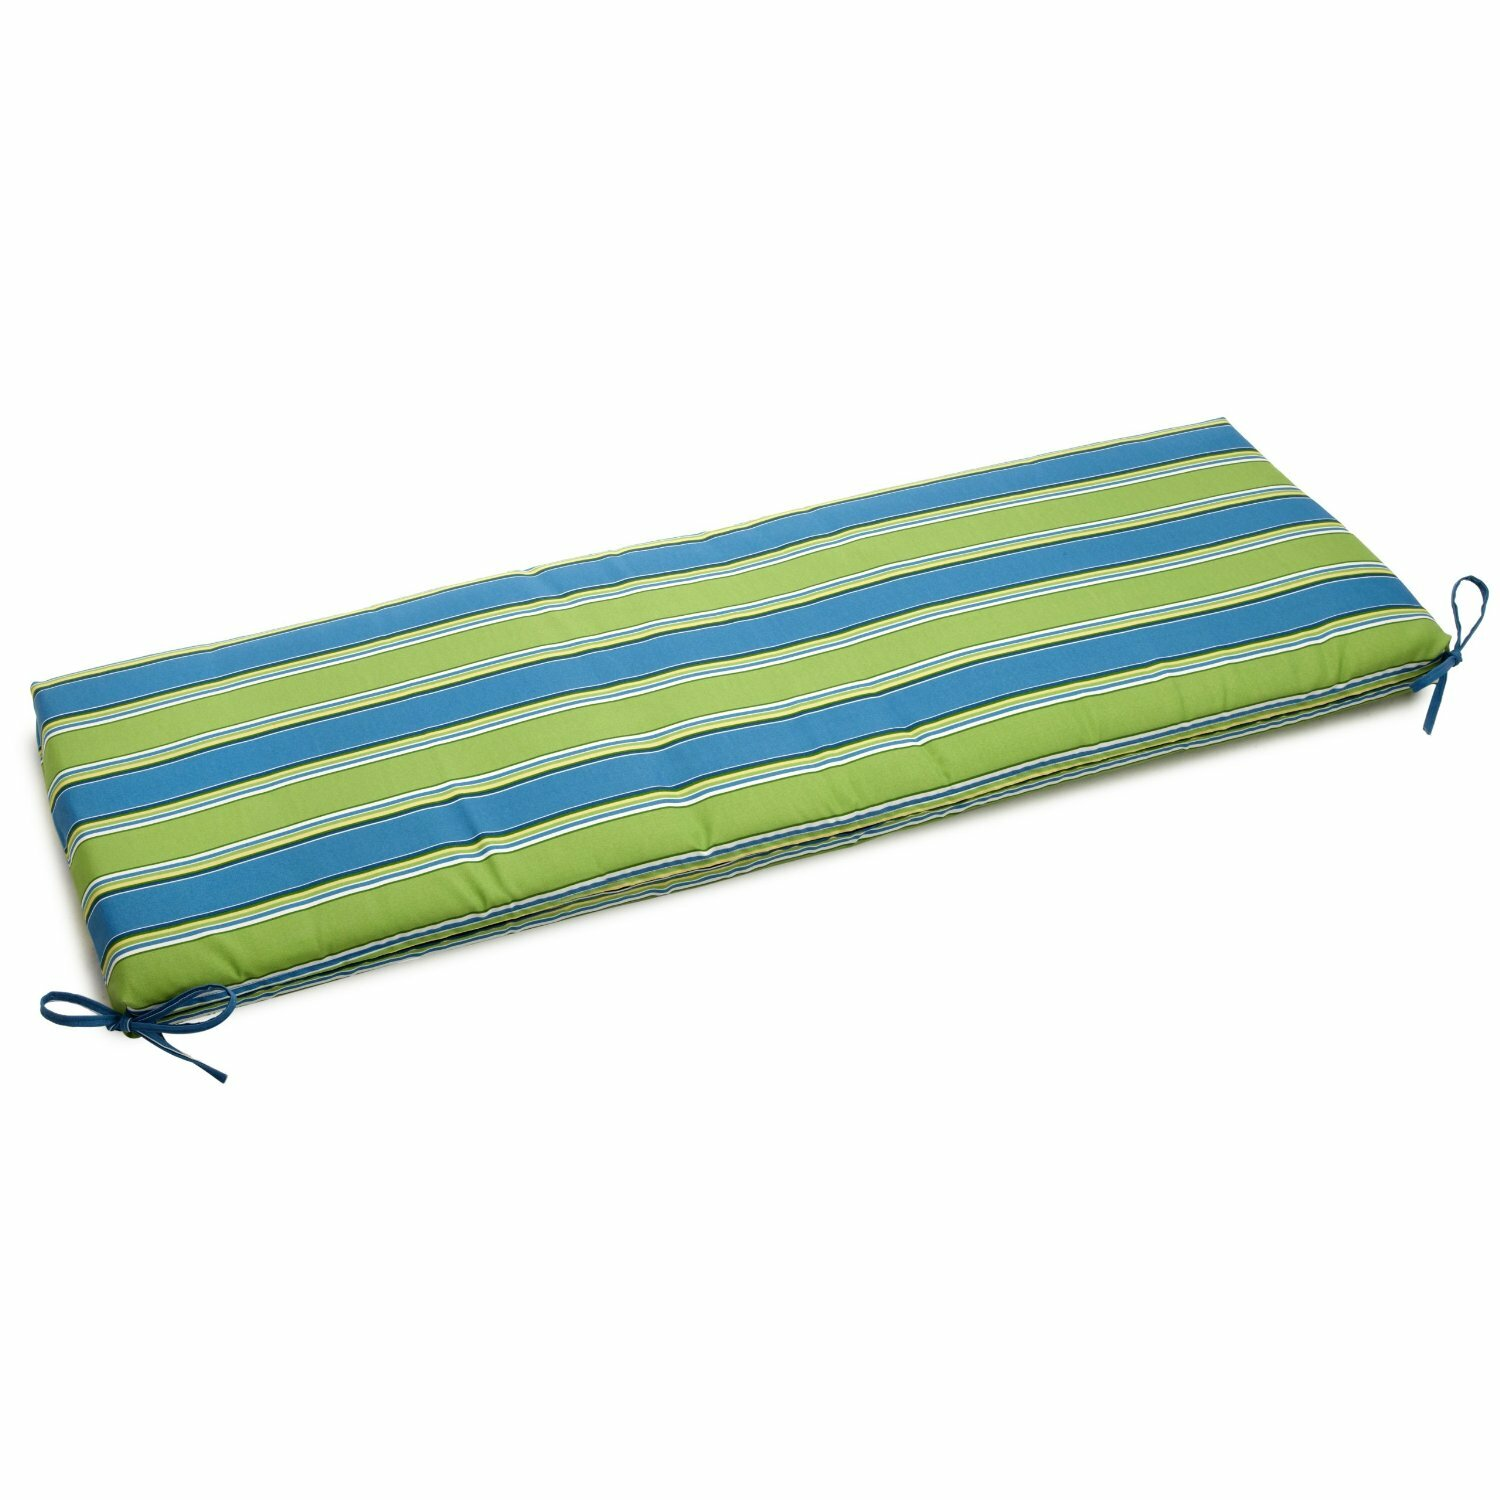 Blazing Needles Haliwell Outdoor Bench Cushion & Reviews